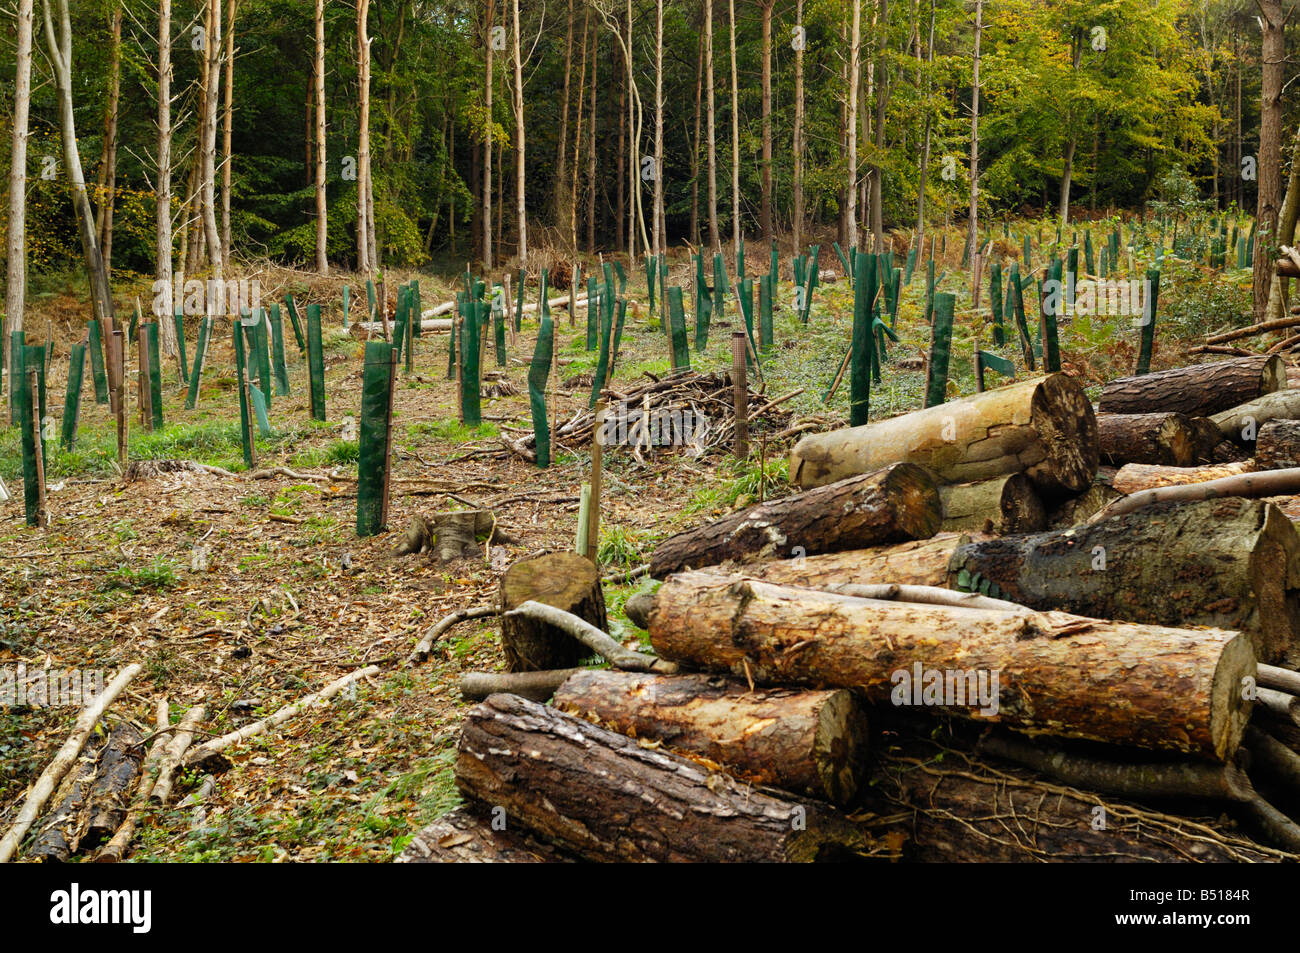 Young trees in the managed woodland of Cleeve Wood at Goblin Combe, Cleeve, North  Somerset, England - Stock Image